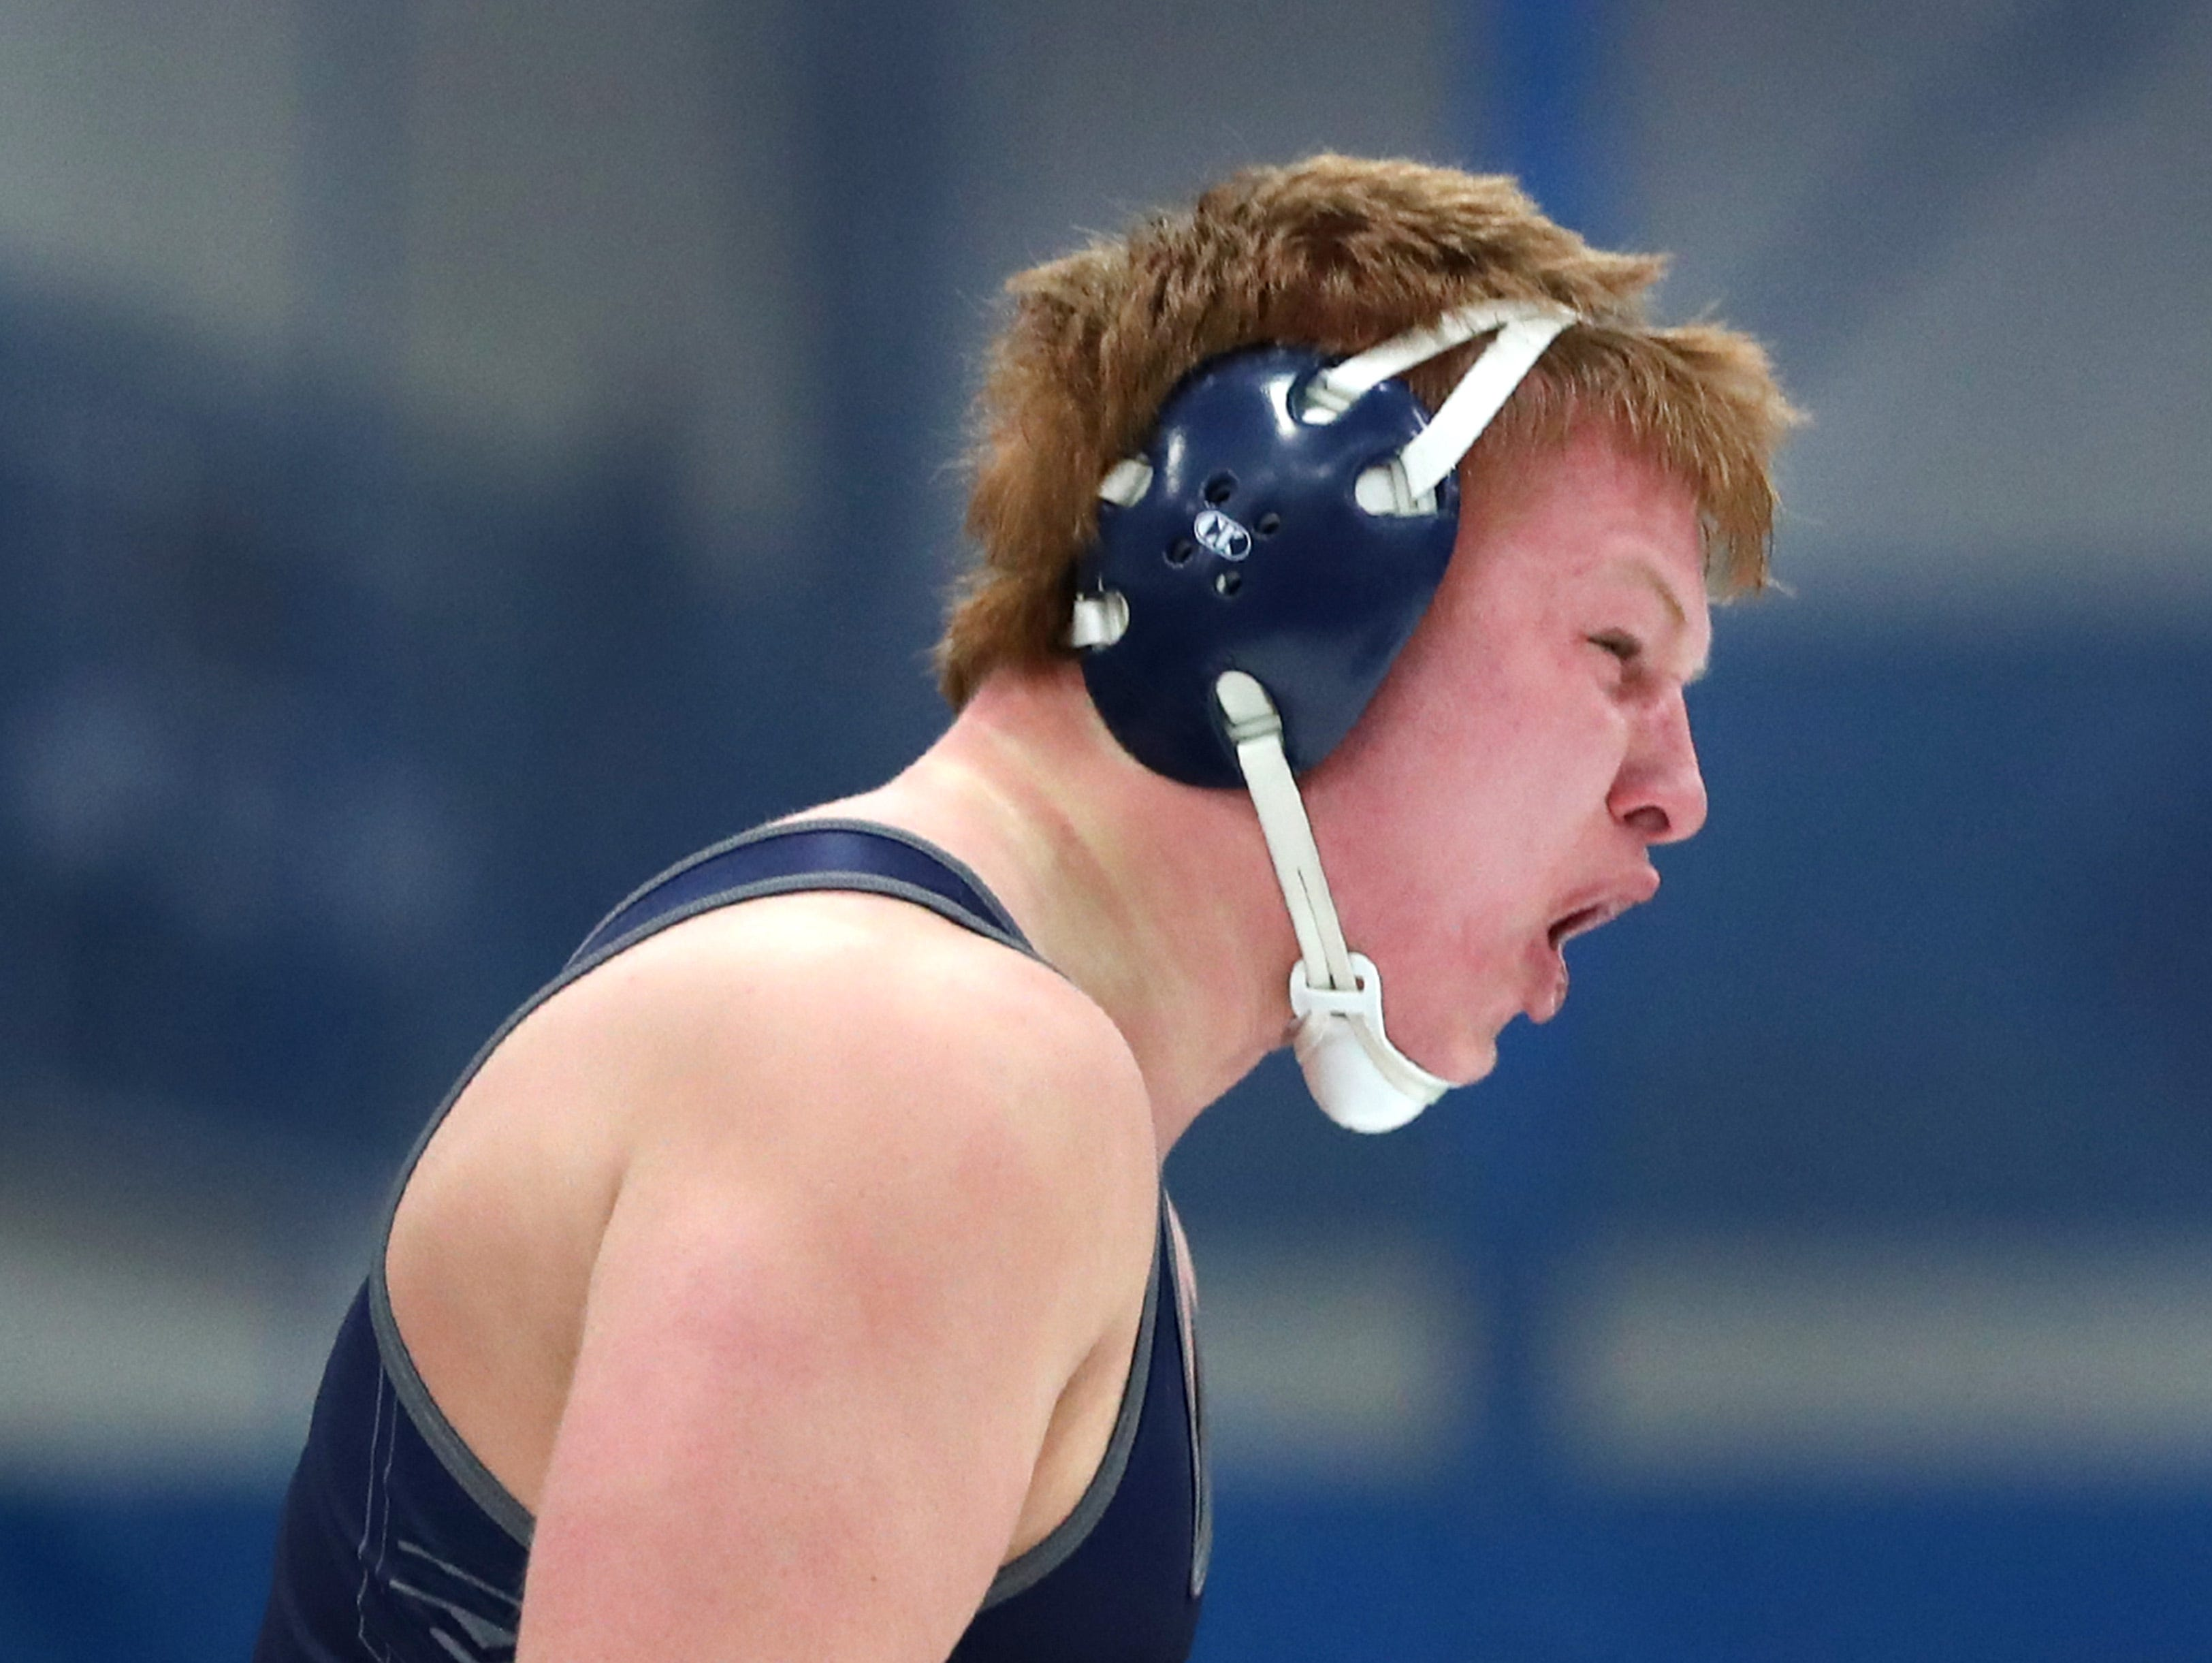 Xavier's Mac Strand celebrates his win over Omro's Kyle Dietzen during the 220-pound championship match in their D2 wrestling regional Saturday Feb. 9, 2019, in Little Chute, Wis.